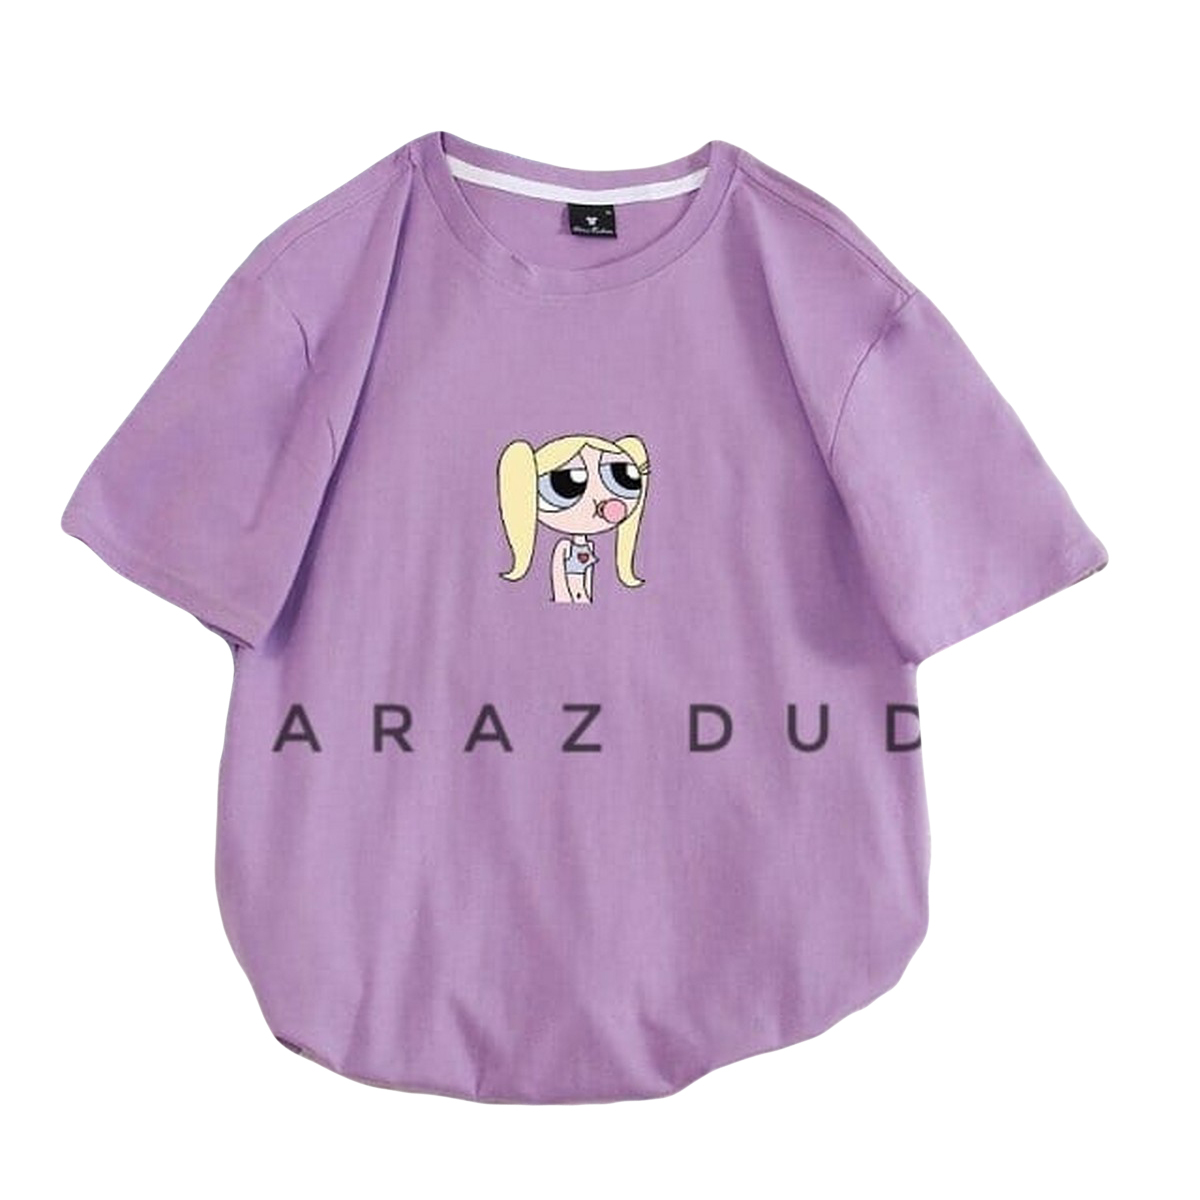 New PPG Print Round Neck Half Sleeves Casual Printed T Shirts For Girls Women And Ladies